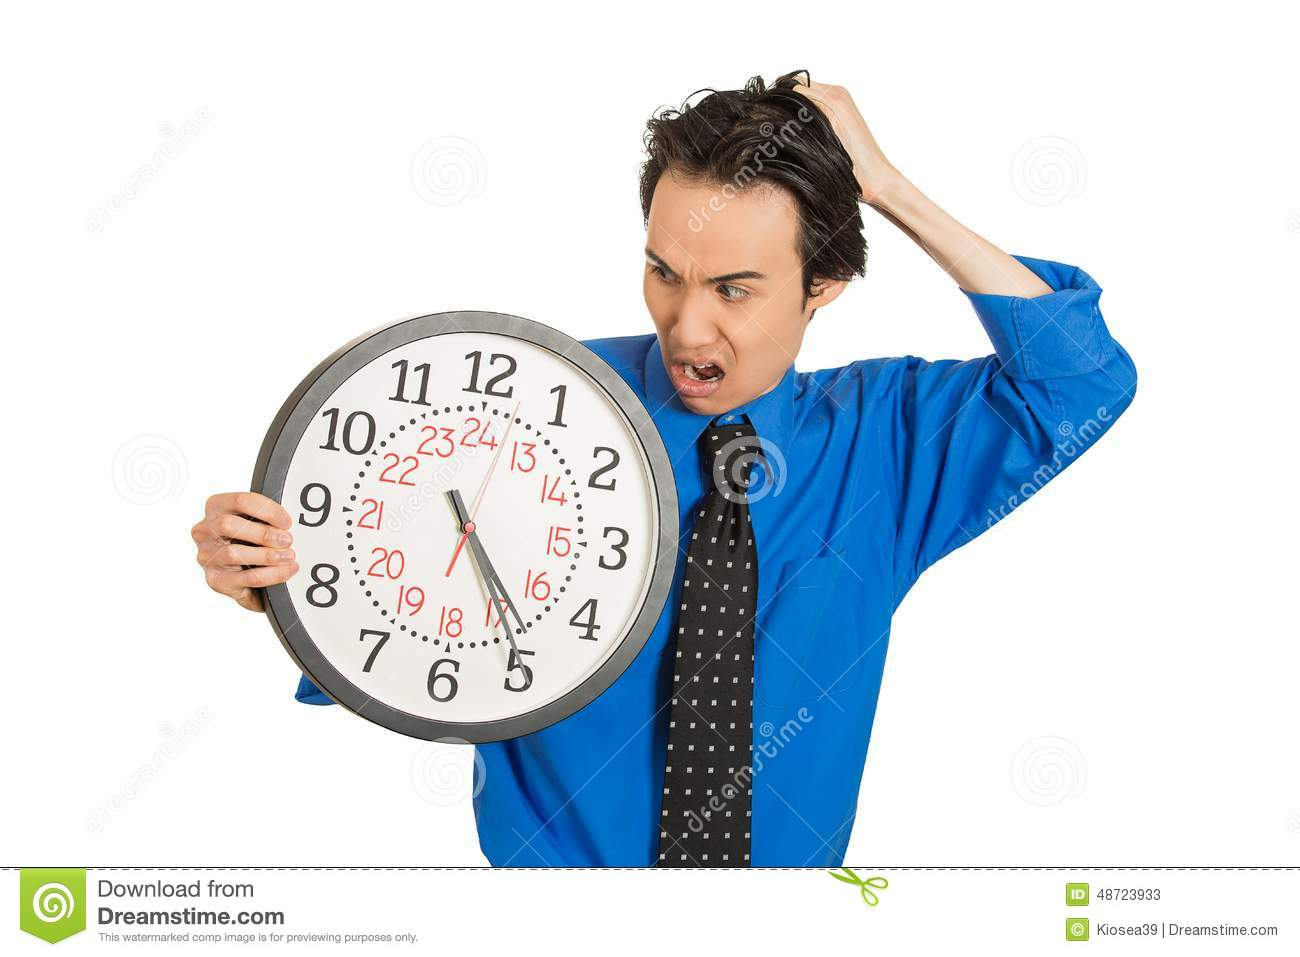 Business man holding clock stressed, pressured by lack of time